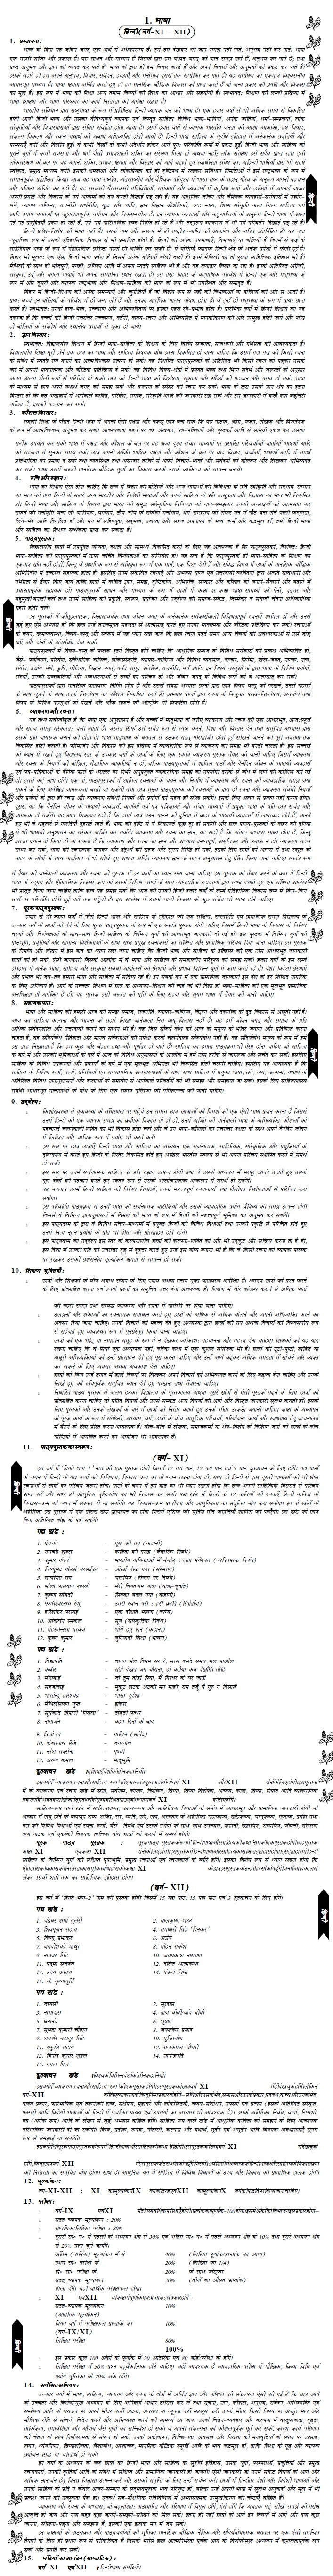 Bihar Board Senior Secondary Syllabus - Lit./Lang.